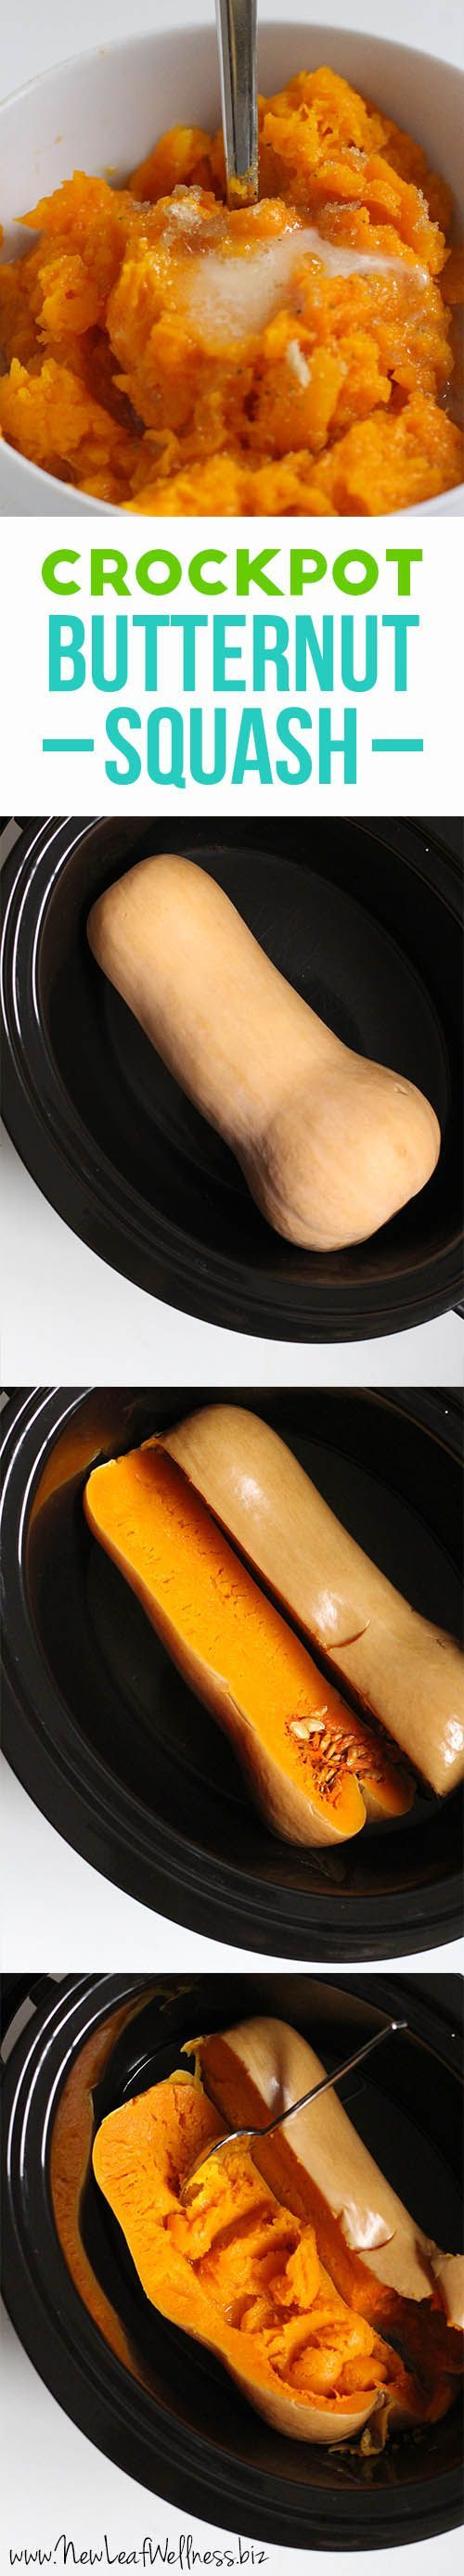 Crockpot Butternut Squash. The easiest & healthiest recipe you will ever pin!